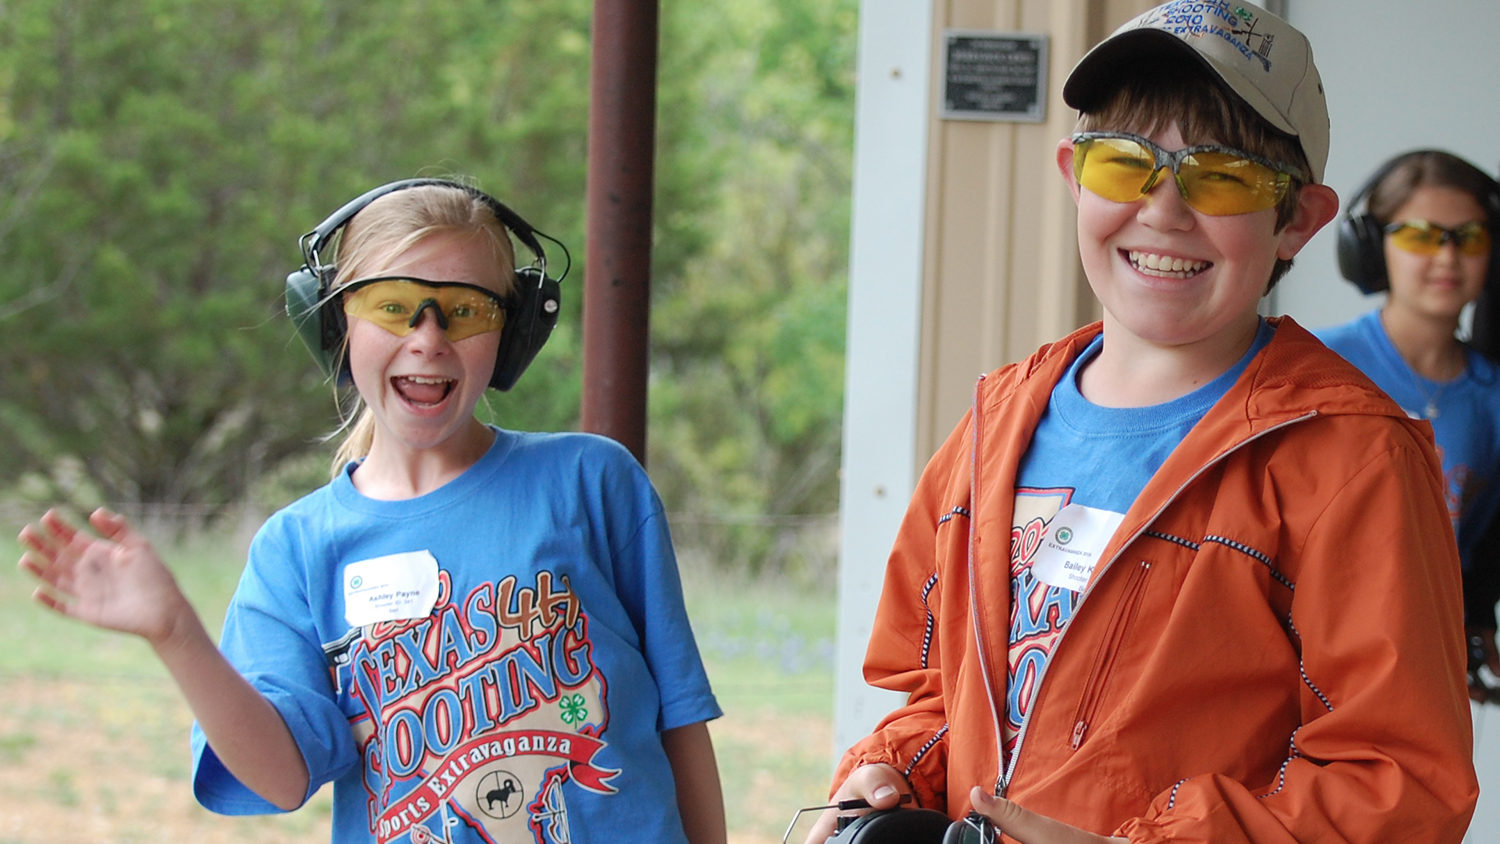 5 Ideas for Summer Family Fun.... NRA Style!